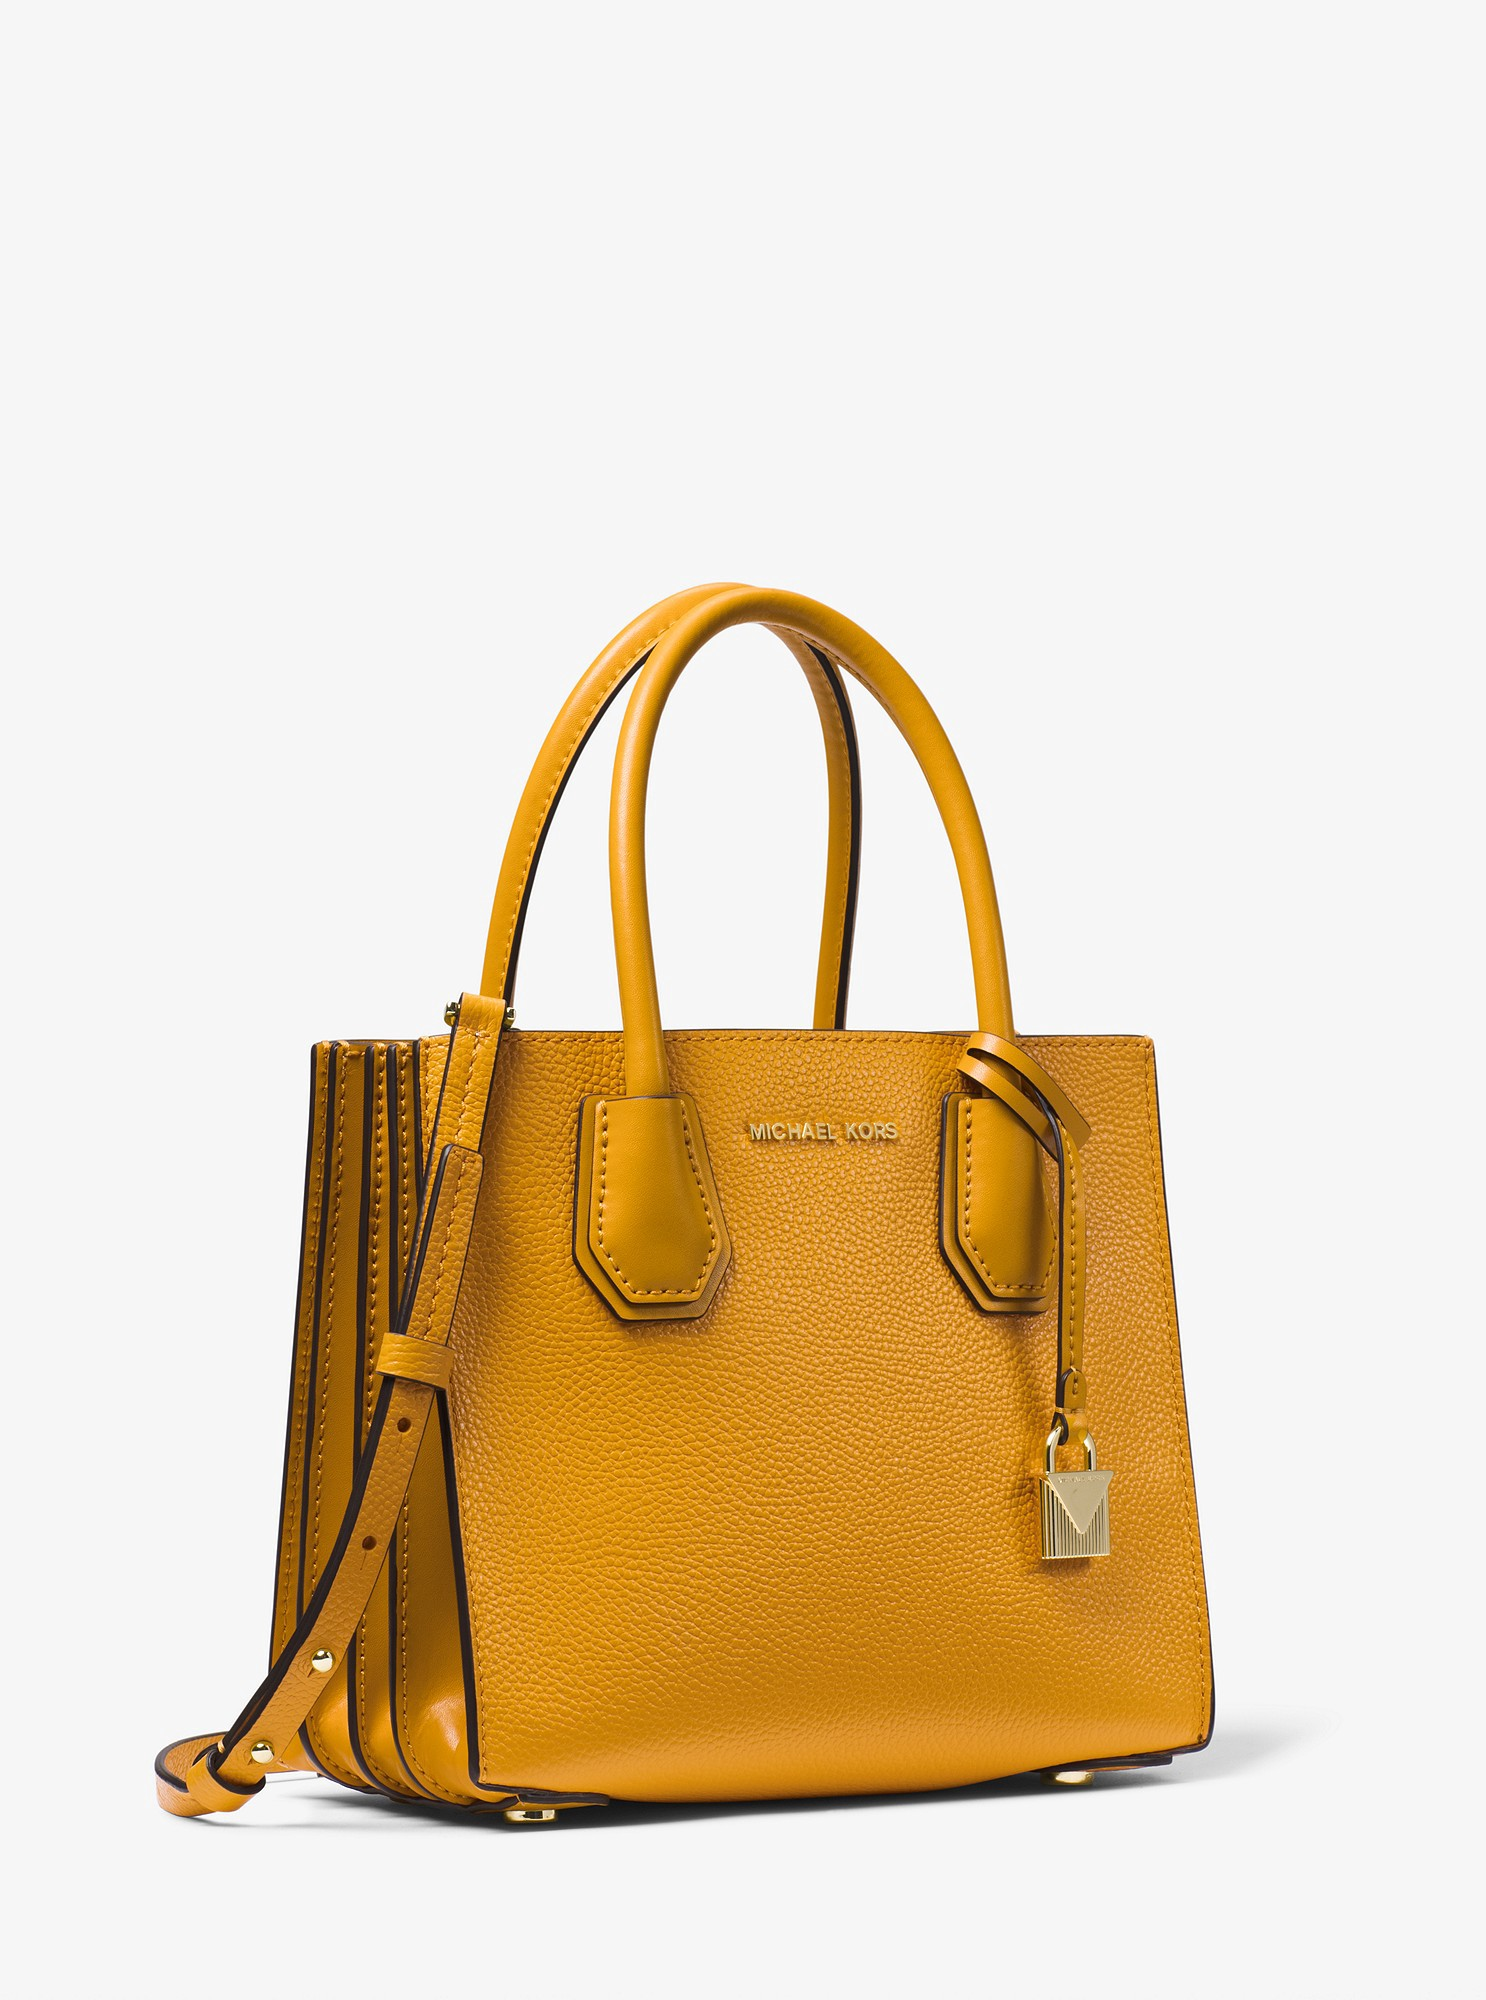 1814c37670b49 Mercer Pebbled Leather Accordion Crossbody by Michael Kors in 2019 ...